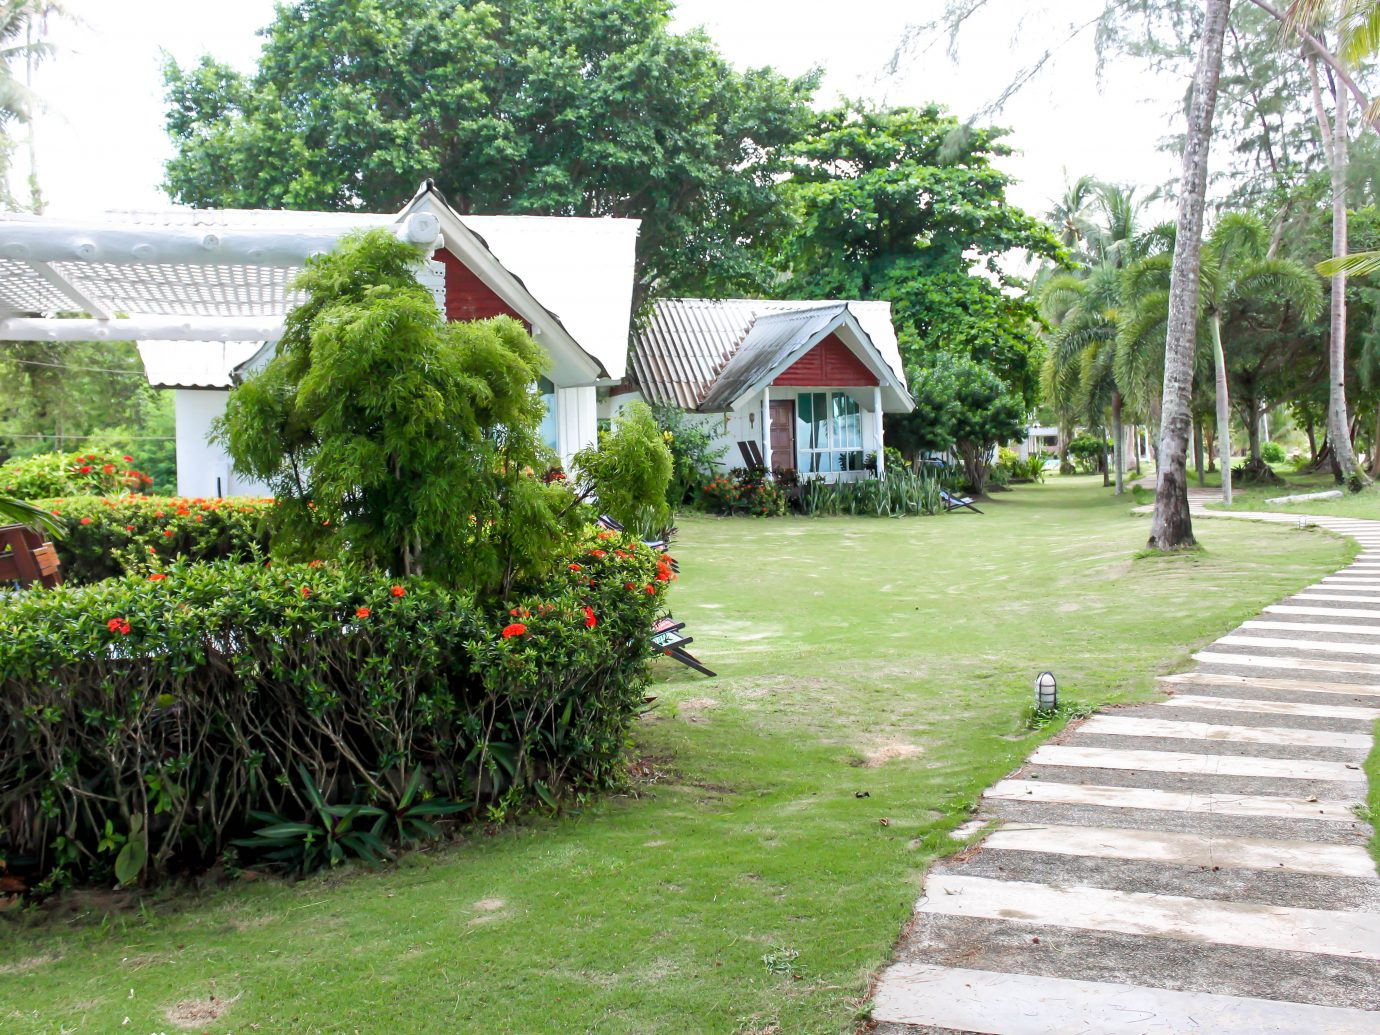 View of white single Bungalows in thailand. Koh Mak island